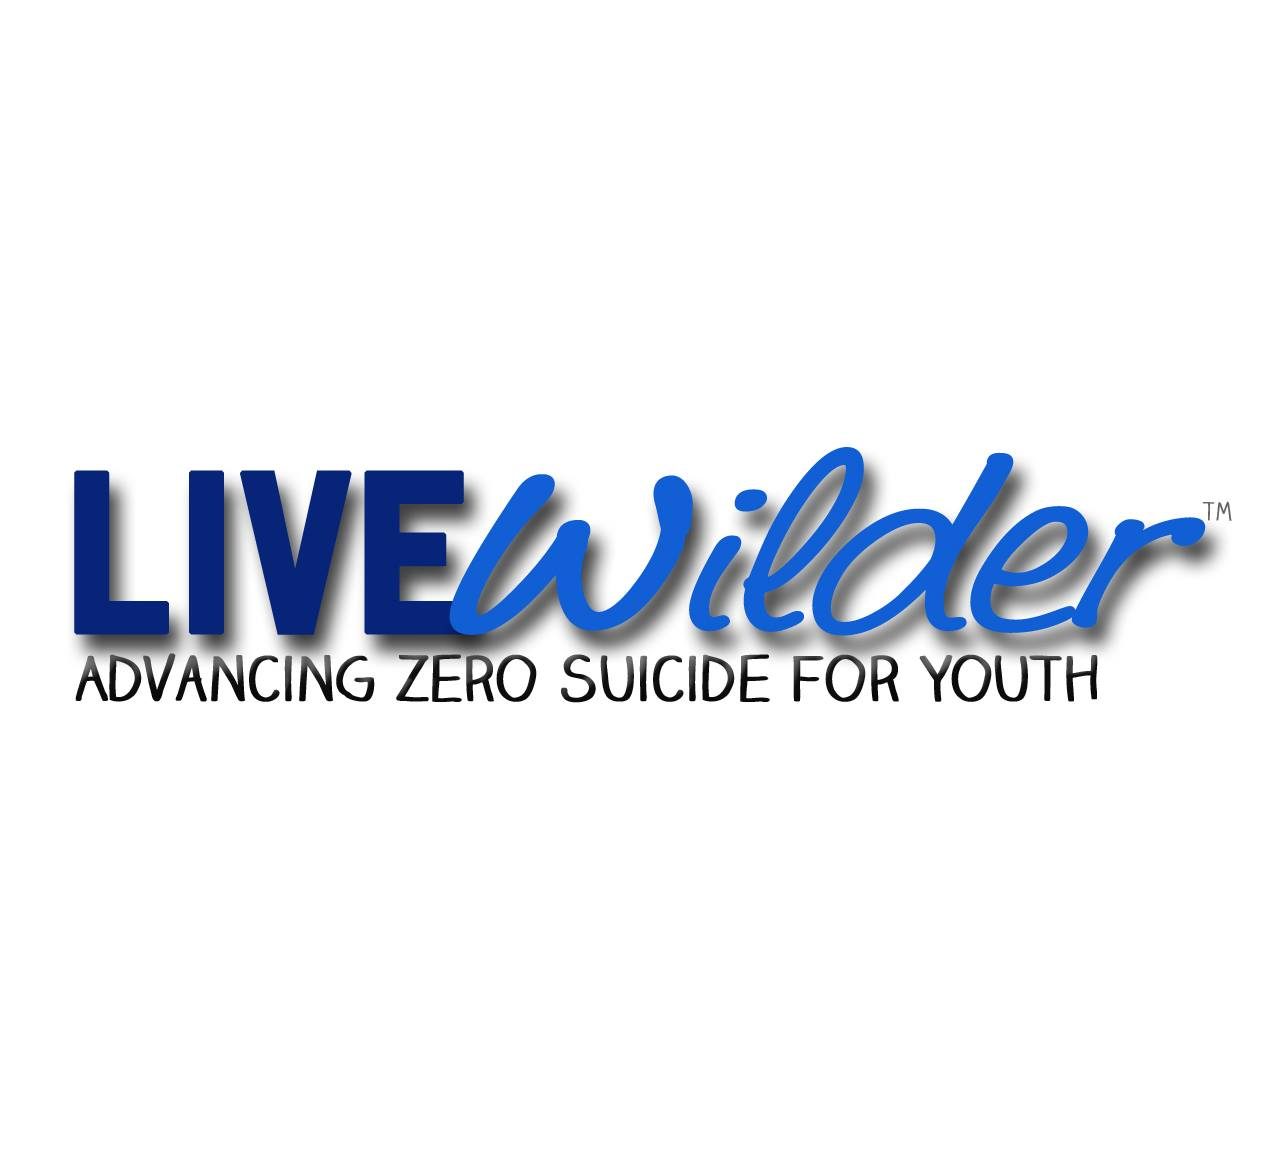 LiveWilder Foundation